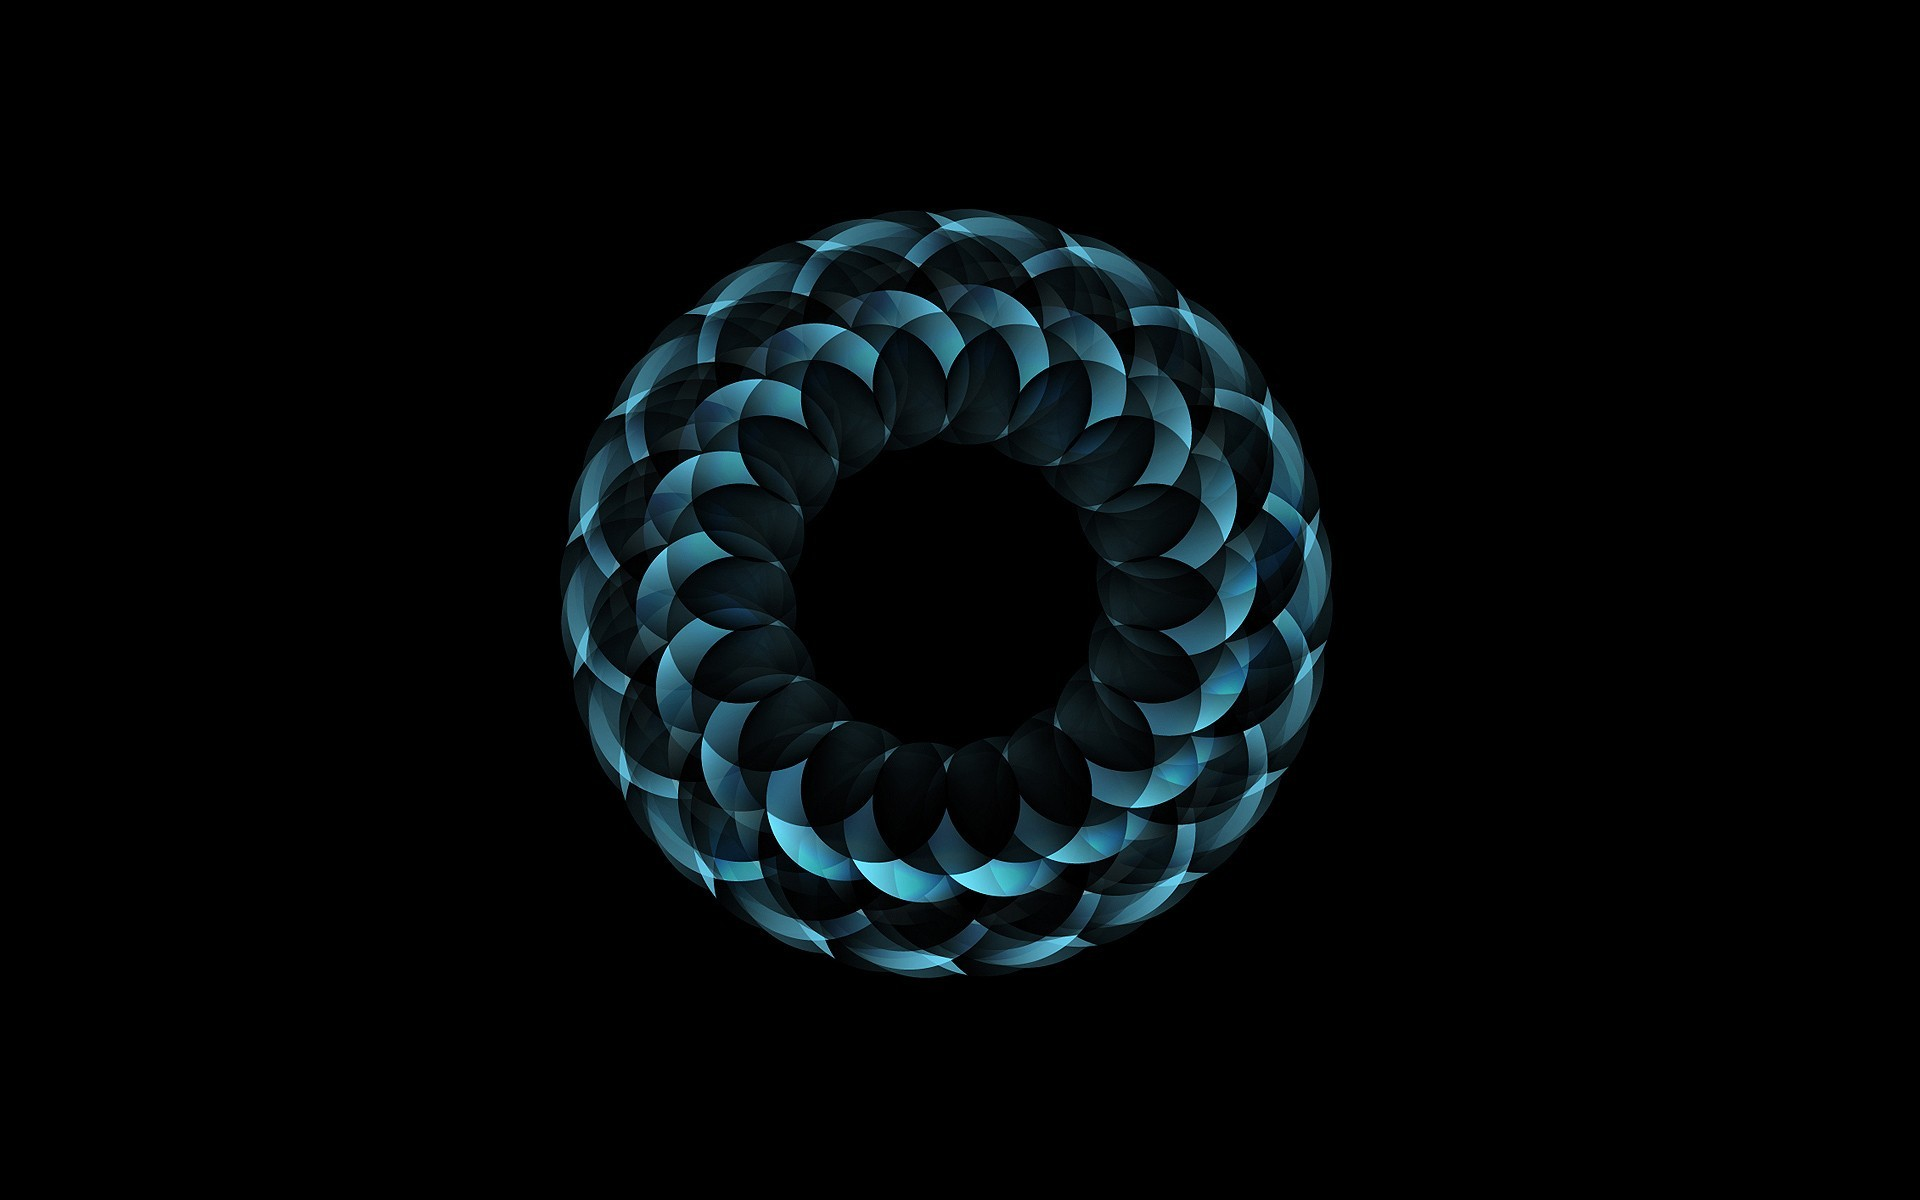 abstract circles black background HD Wallpaper